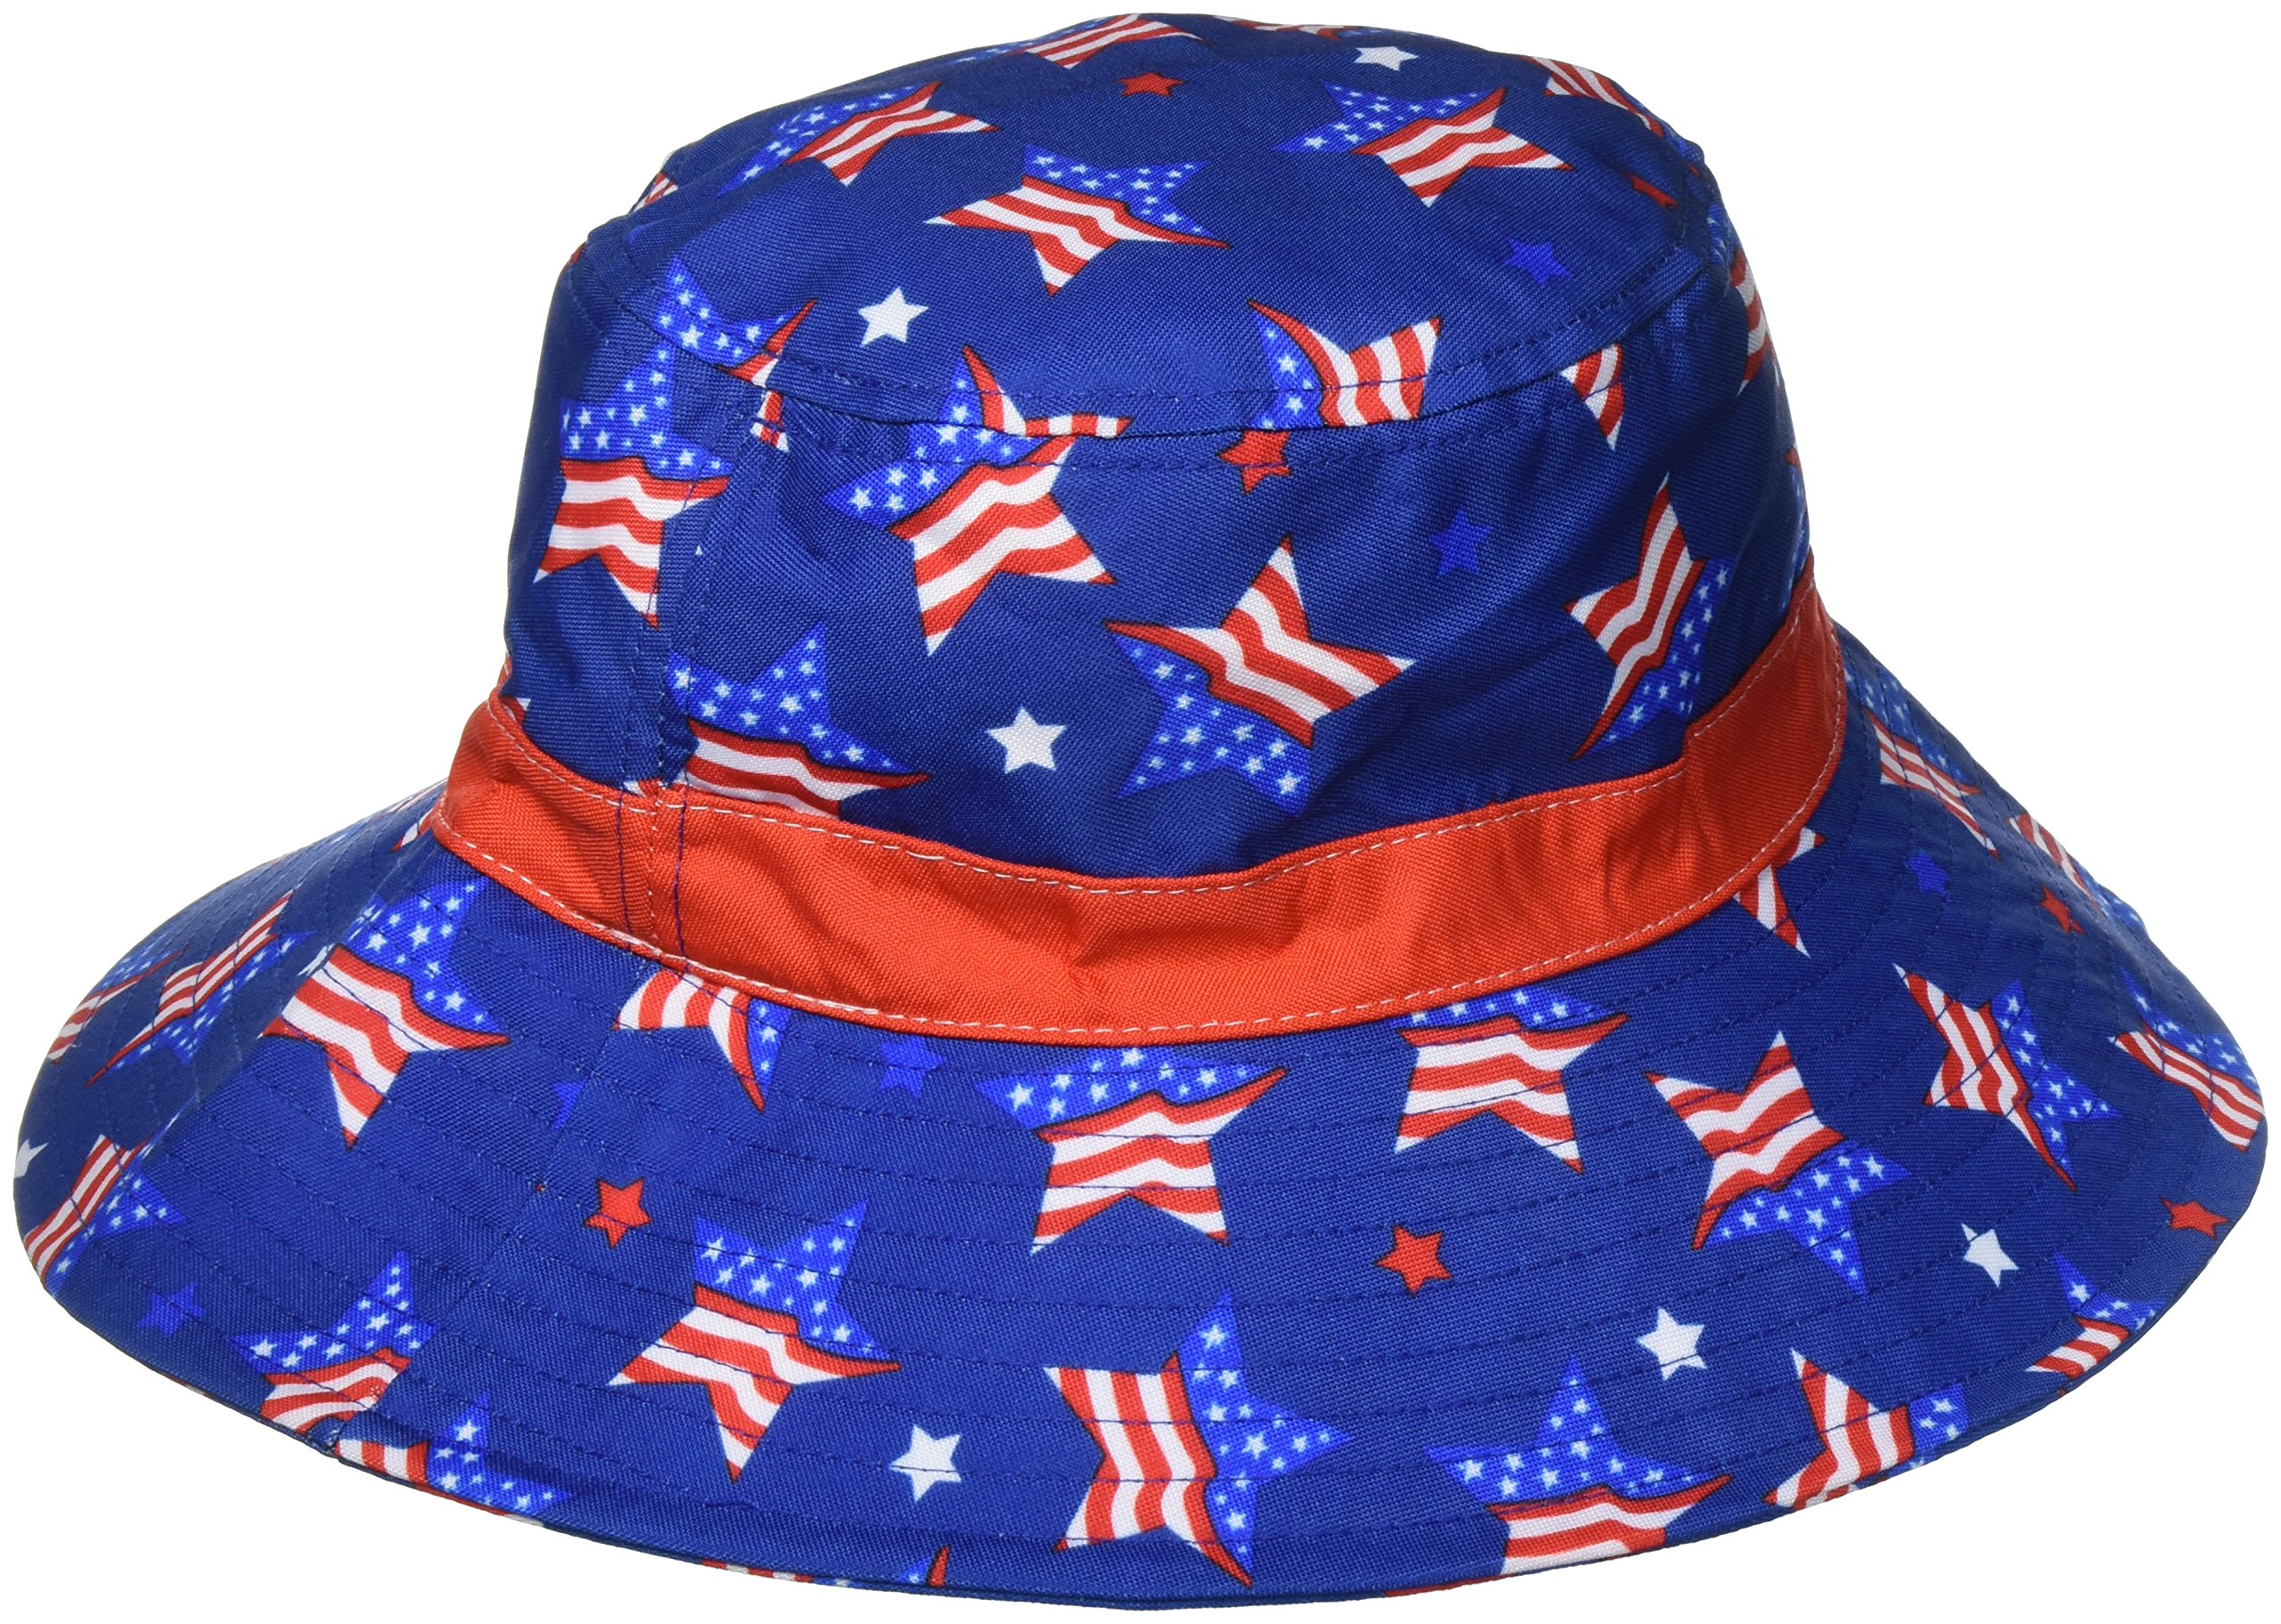 Amscan American Summer Fourth of July Women's Patriotic Bucket Hat Accessory Fabric 4'' x 10'' Costume for Kids